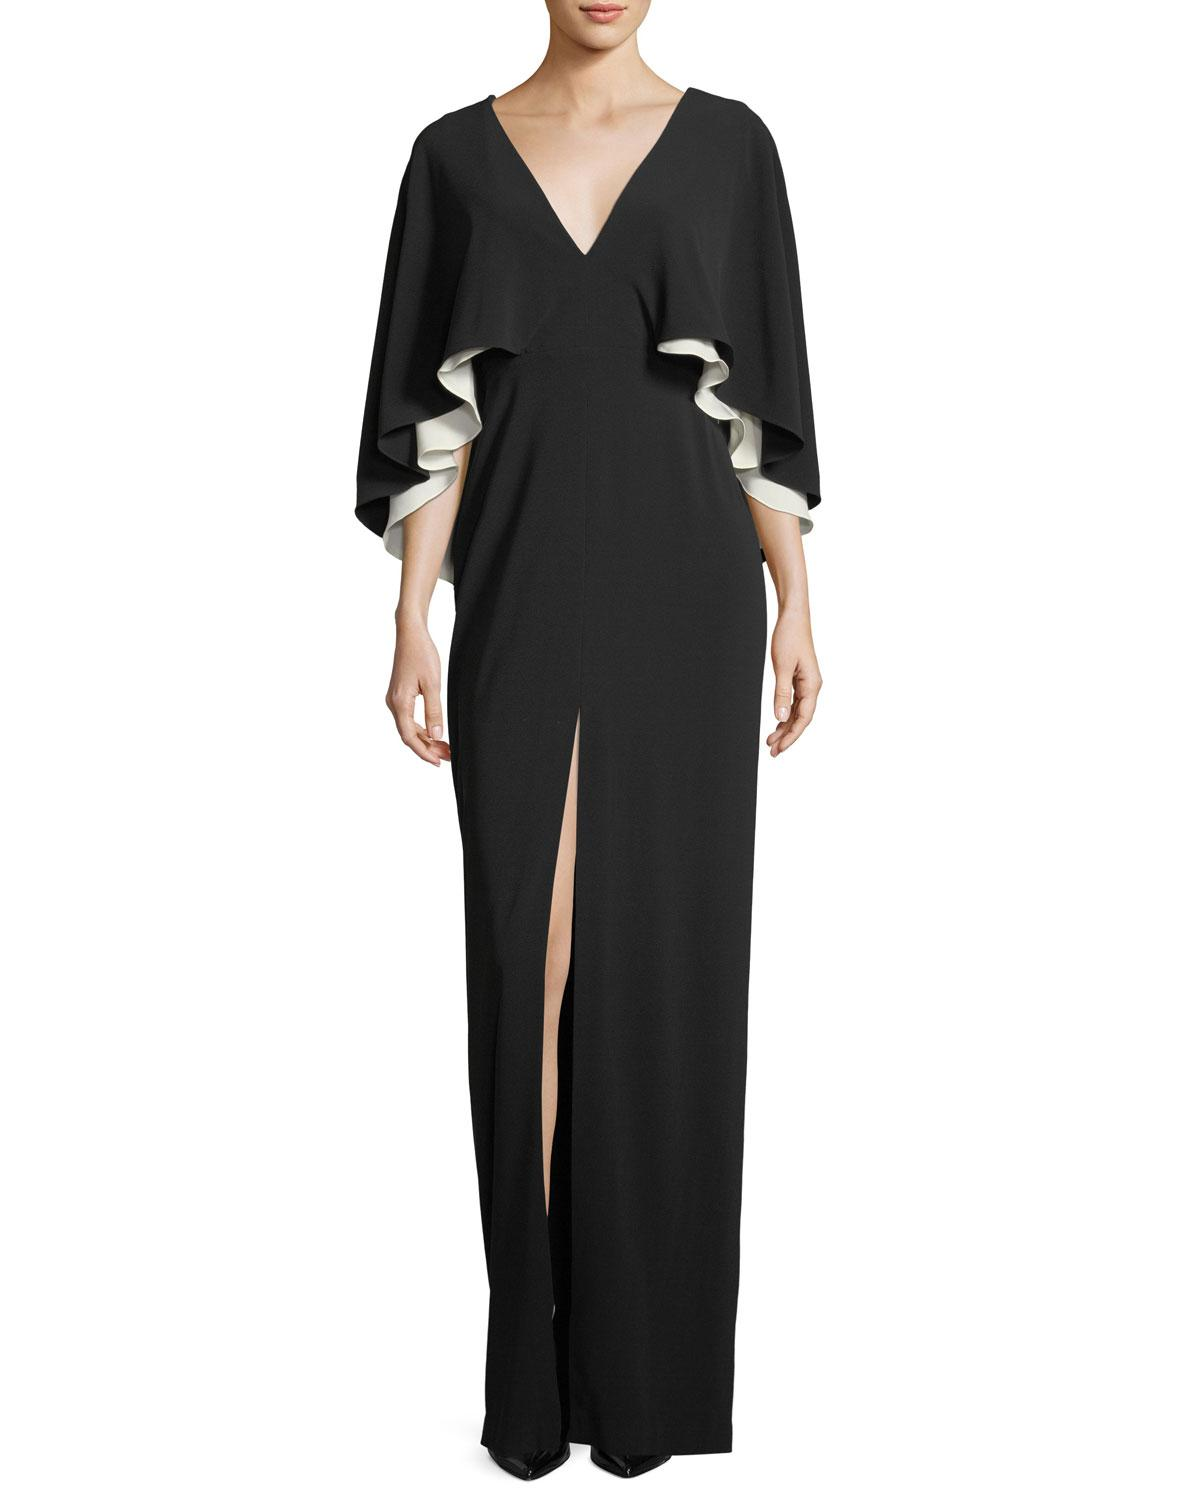 Lyst - Halston Heritage Colorblocked Cape Sleeve V Neck Gown in ...